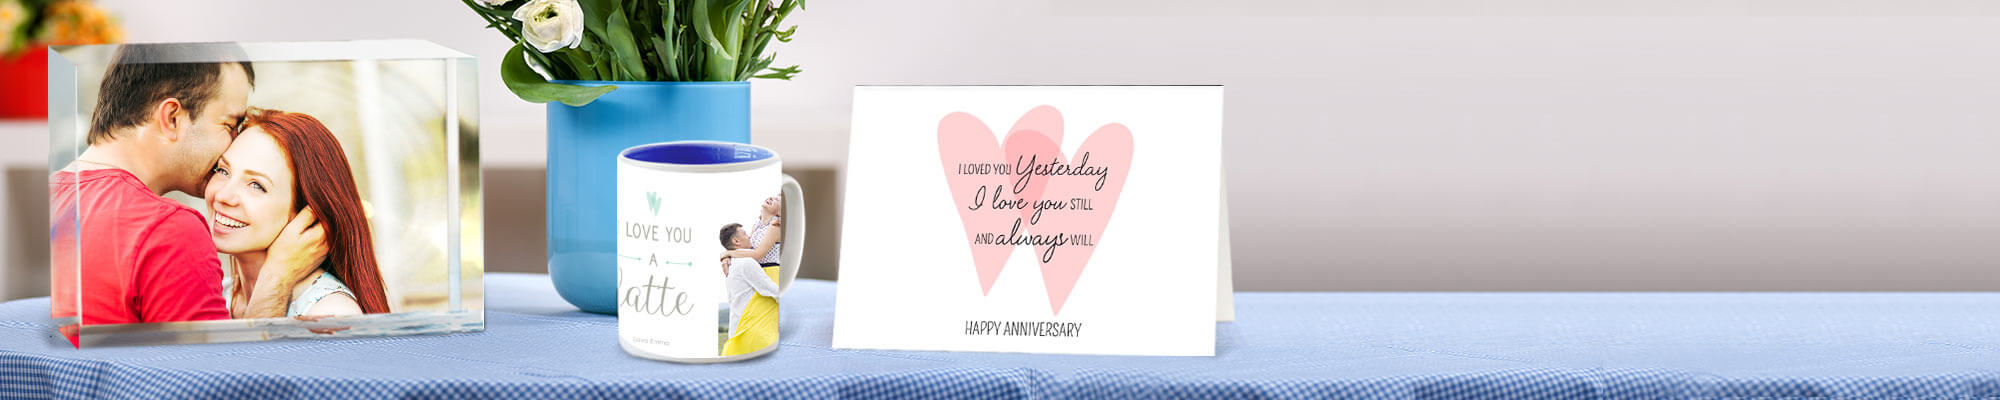 Anniversary Gifts & Cards - Celebrate your milestones